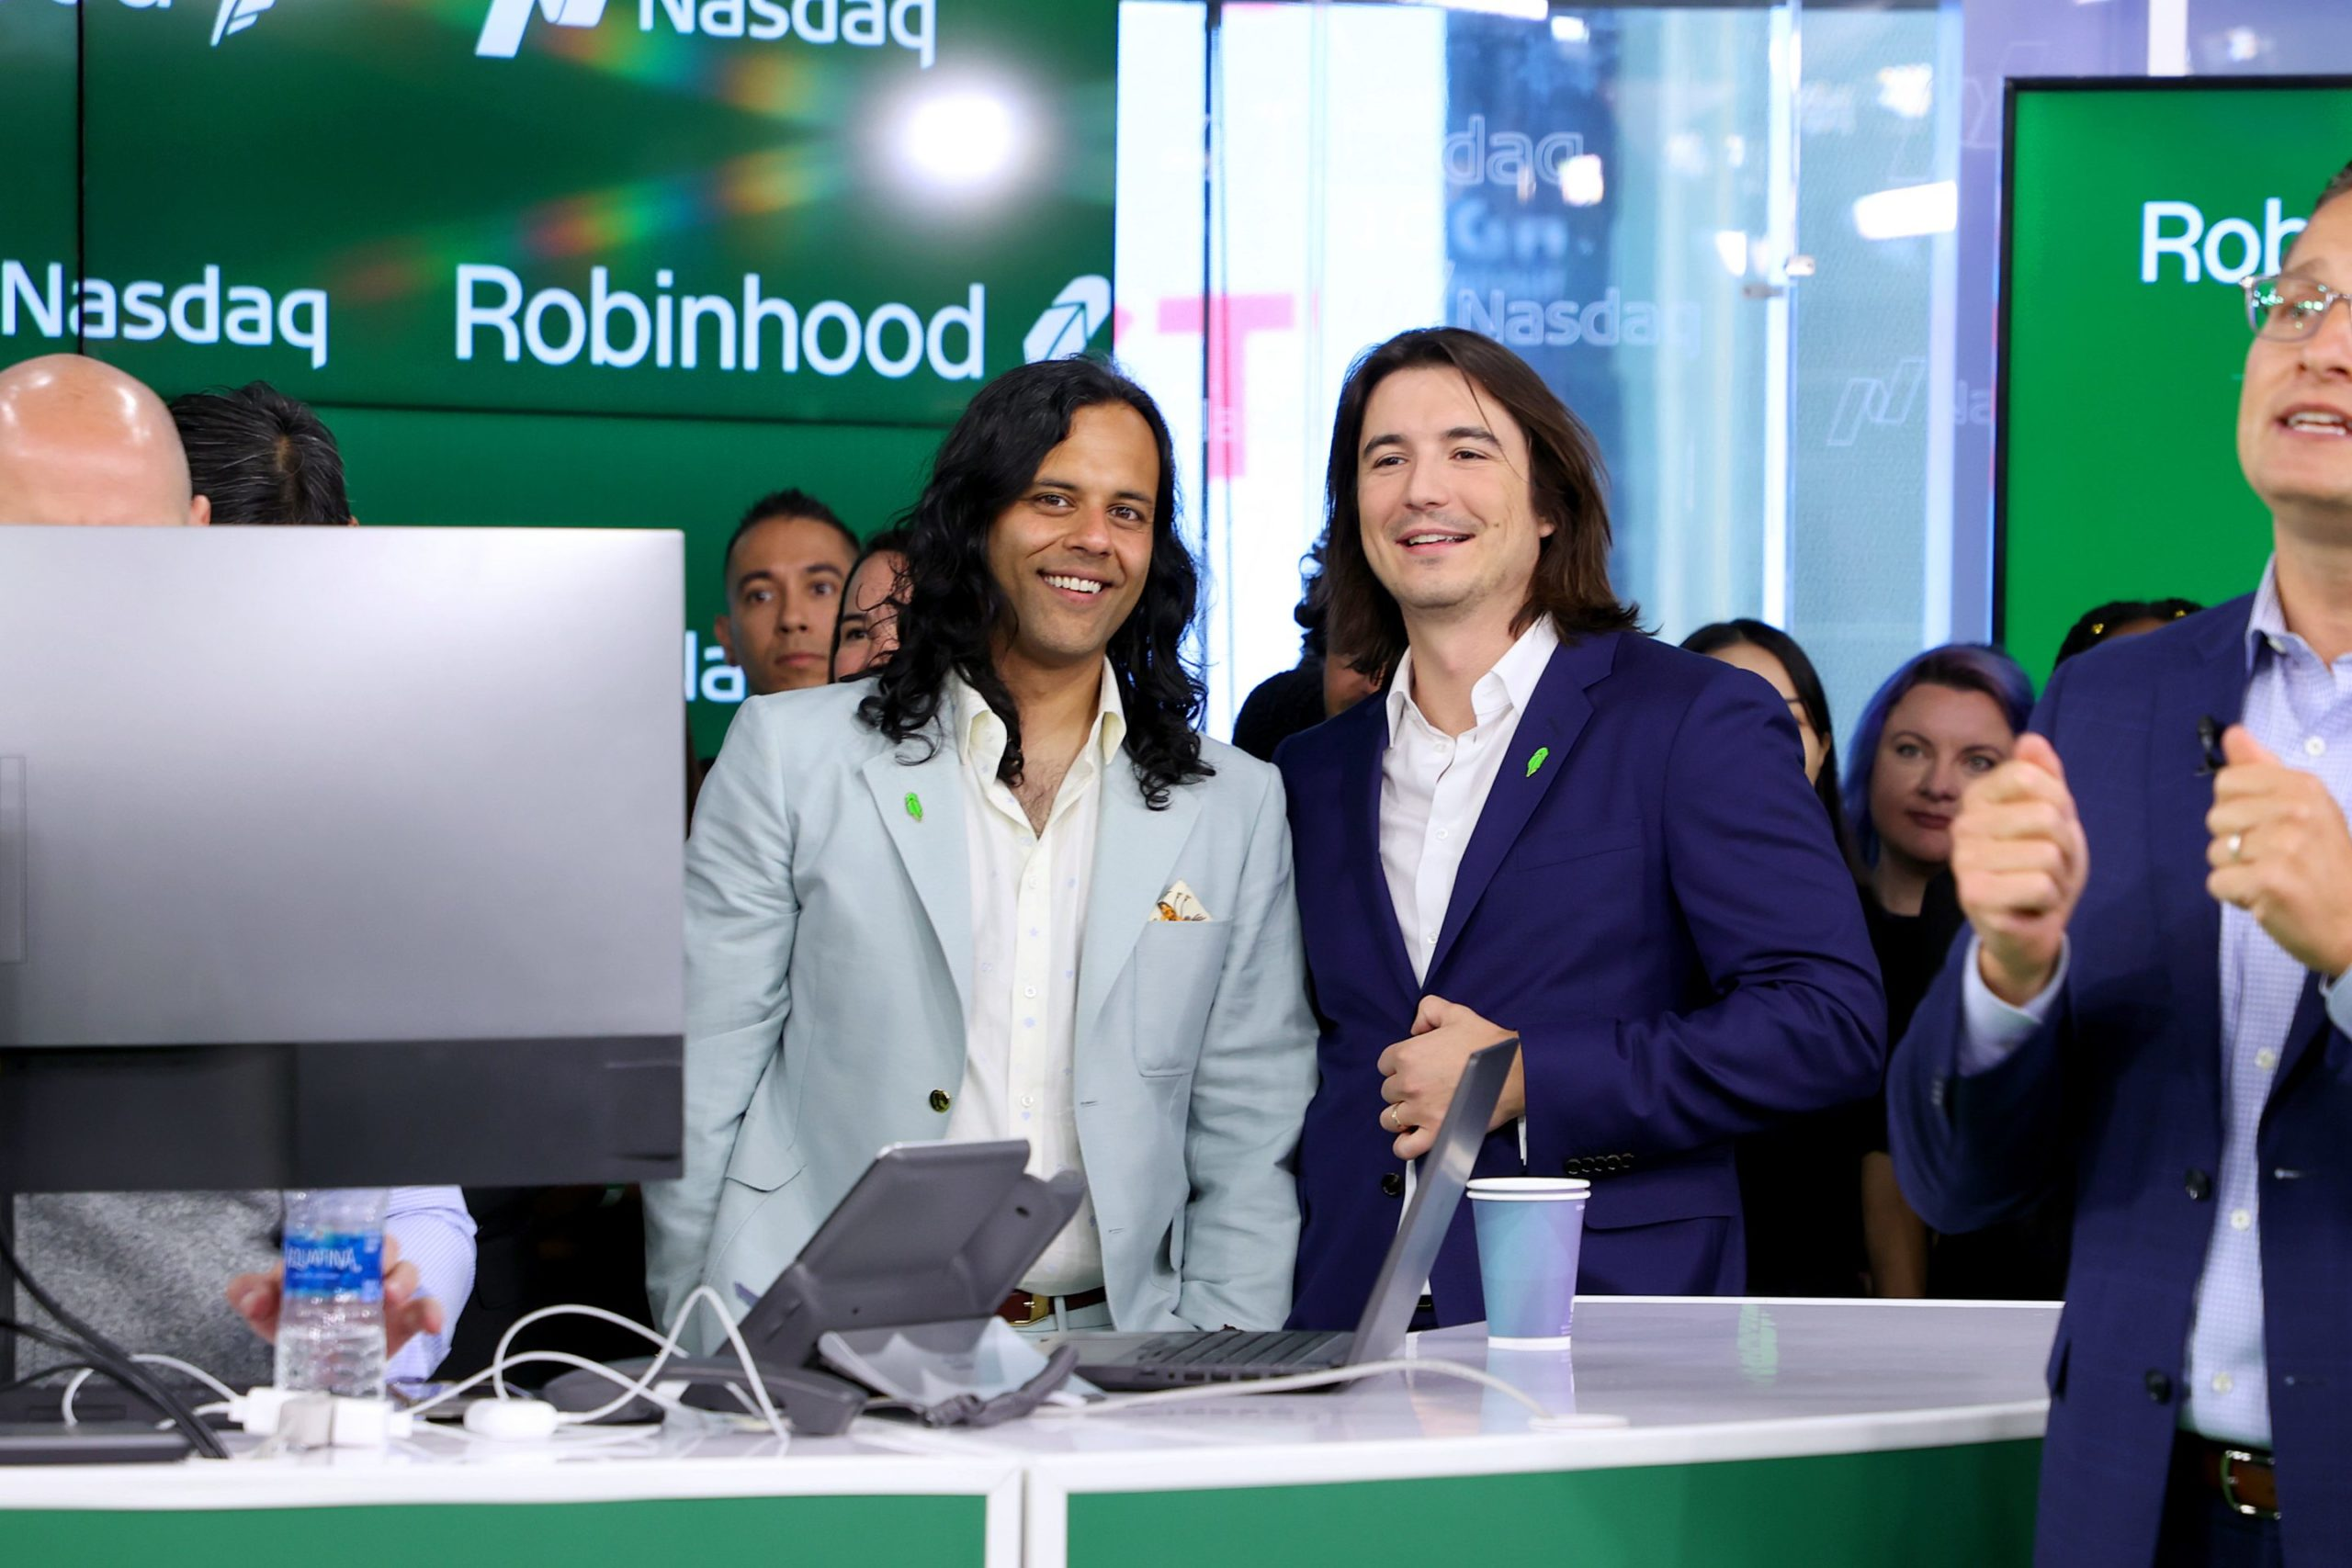 Robinhood has confirmed rumours of cryptocurrency wallet testing